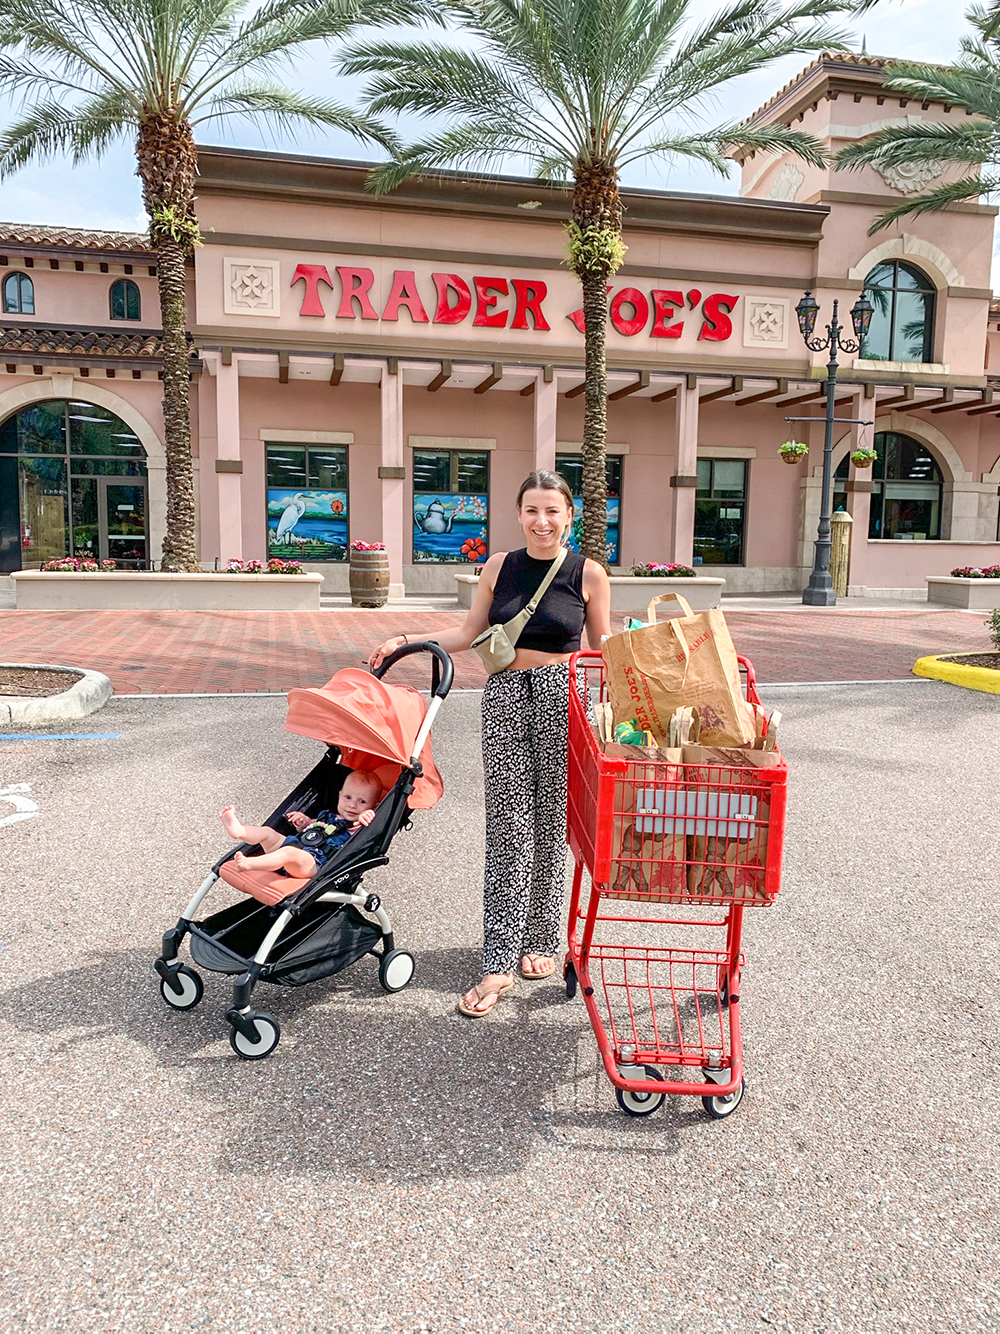 brunette woman with a baby standing outside Trader Joe's with a shopping cart